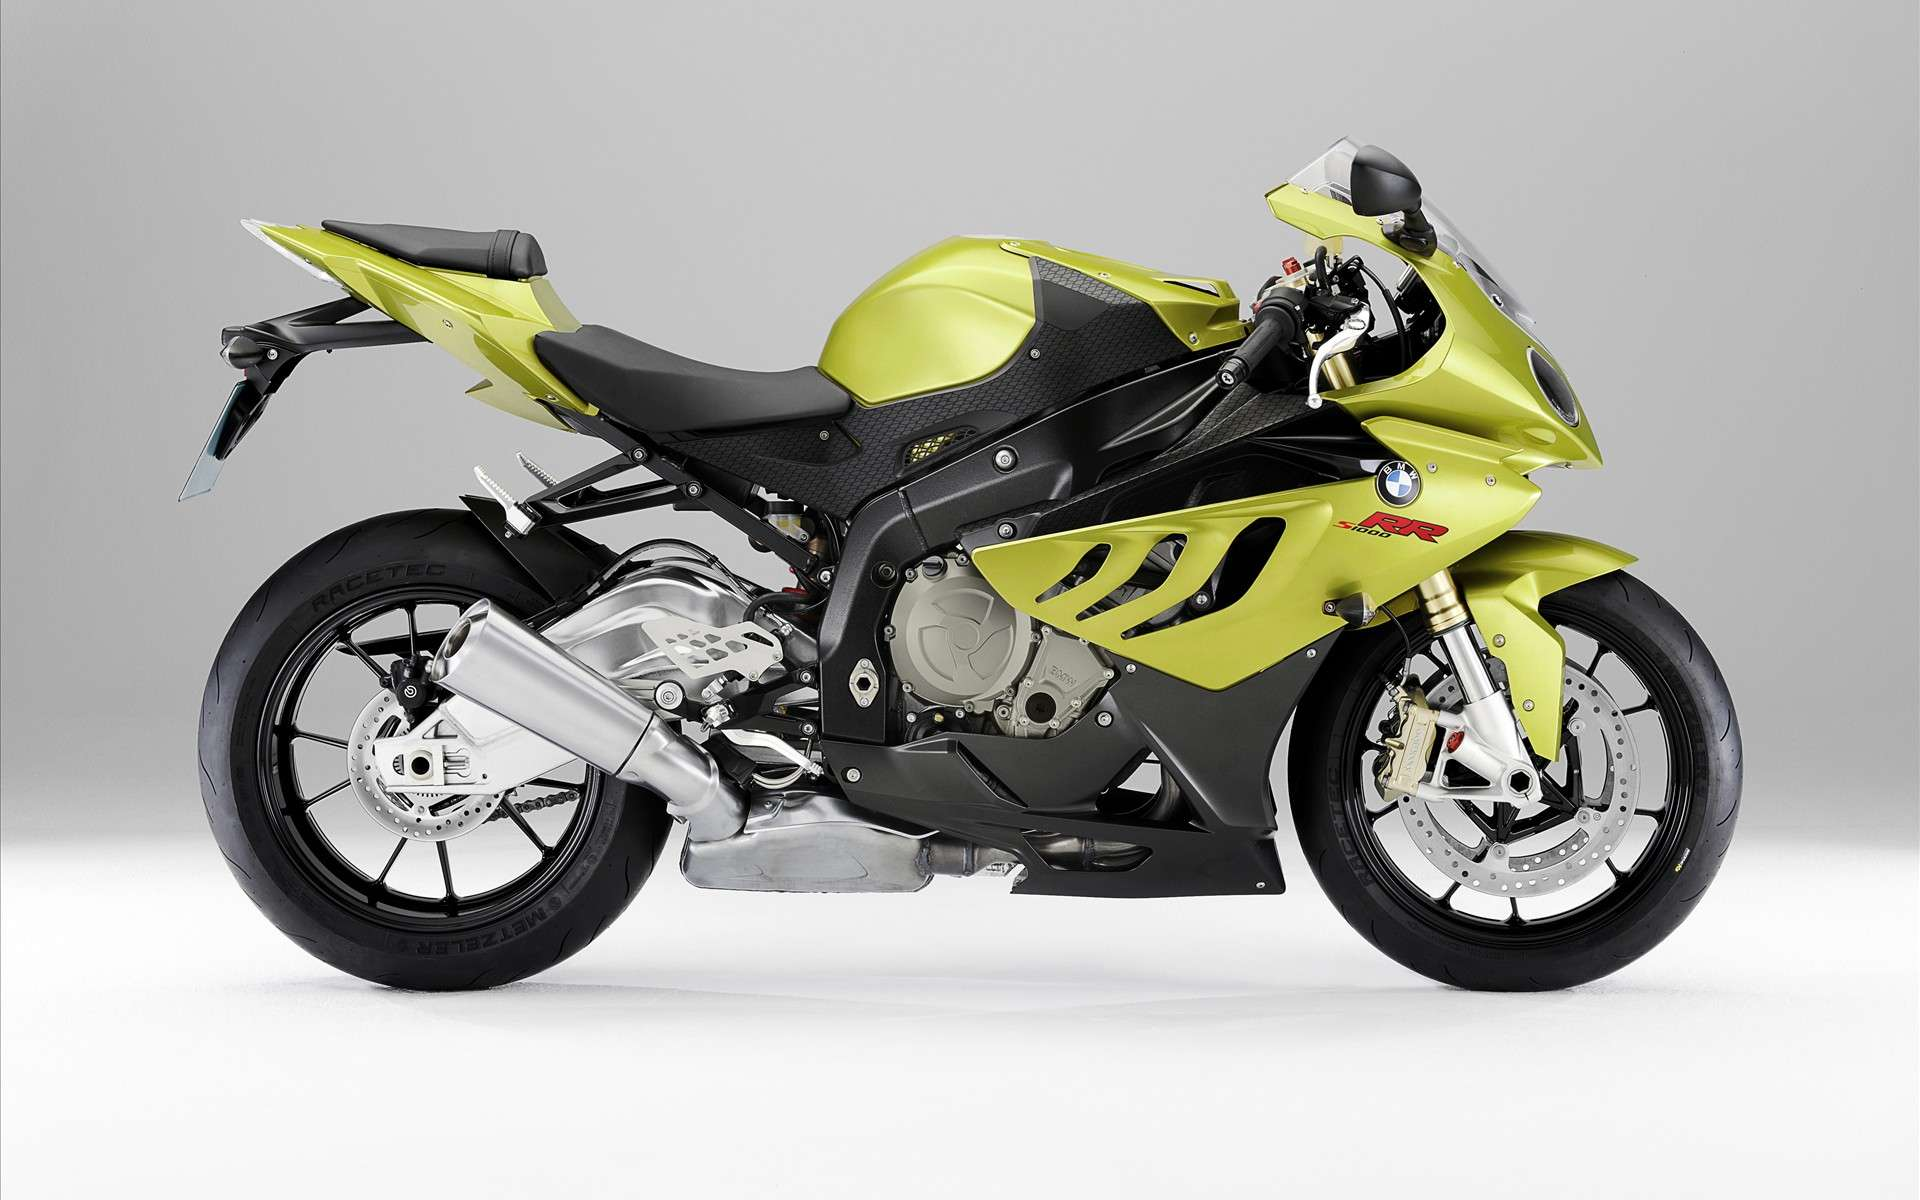 New Bmw S 1000 Rr Wallpapers : Hd Wallpapers